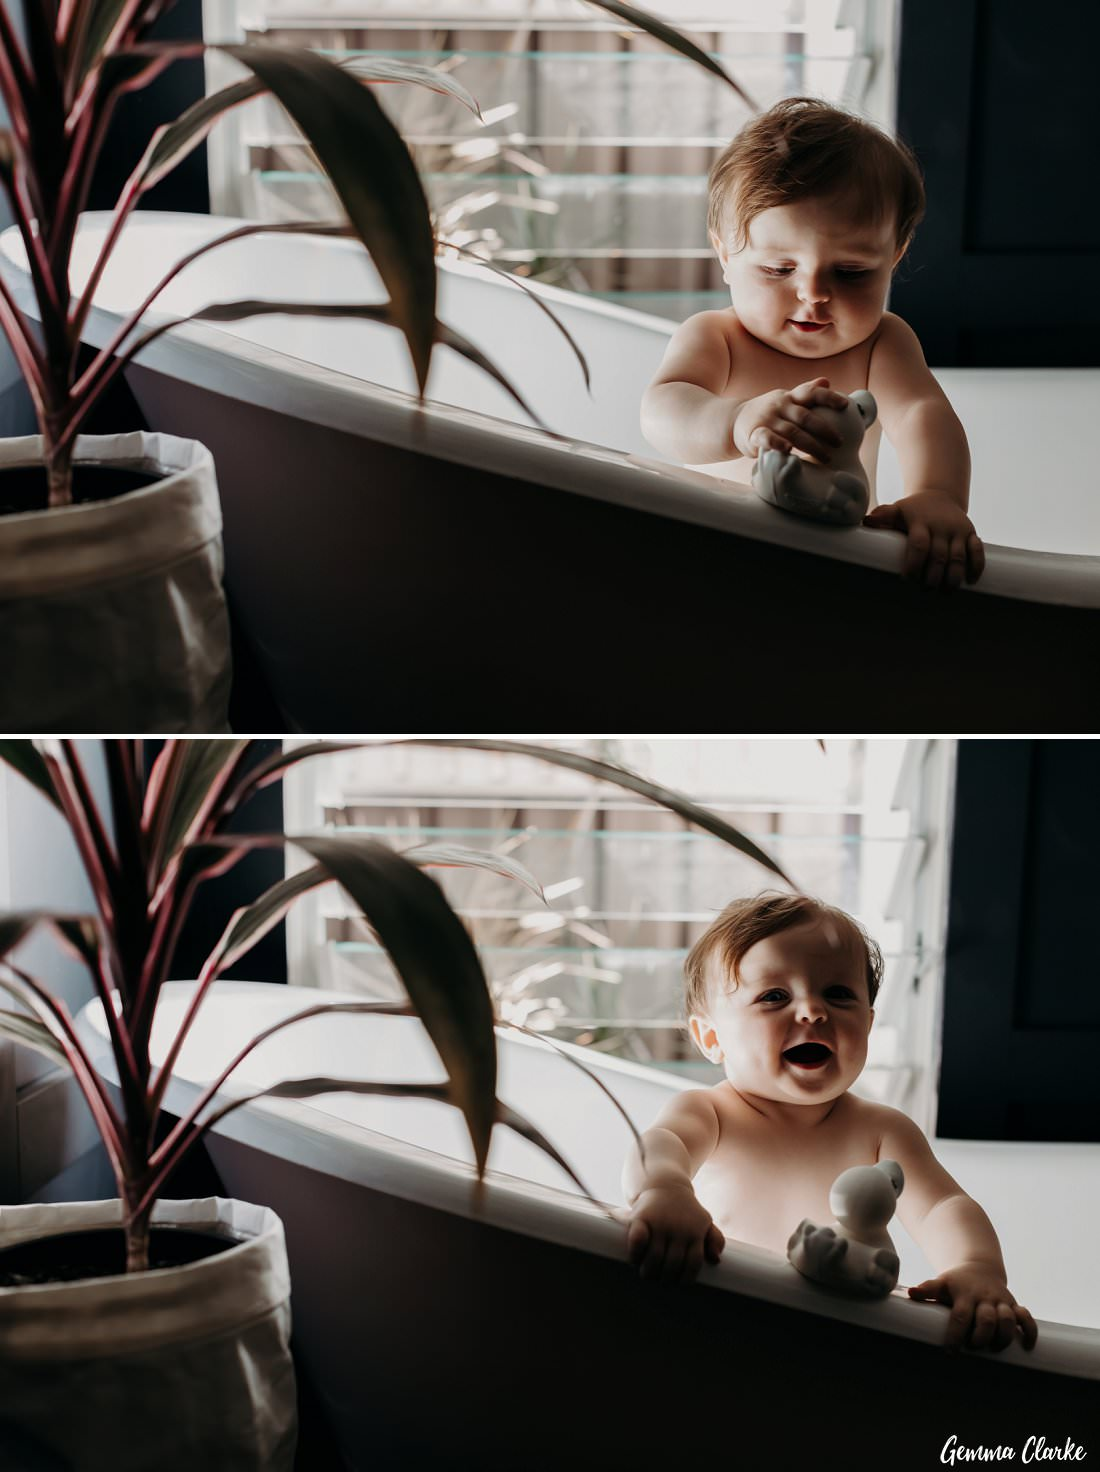 Antique Bath photoshoot featuring a gorgeous nine month old baby playing with white rubber duckie